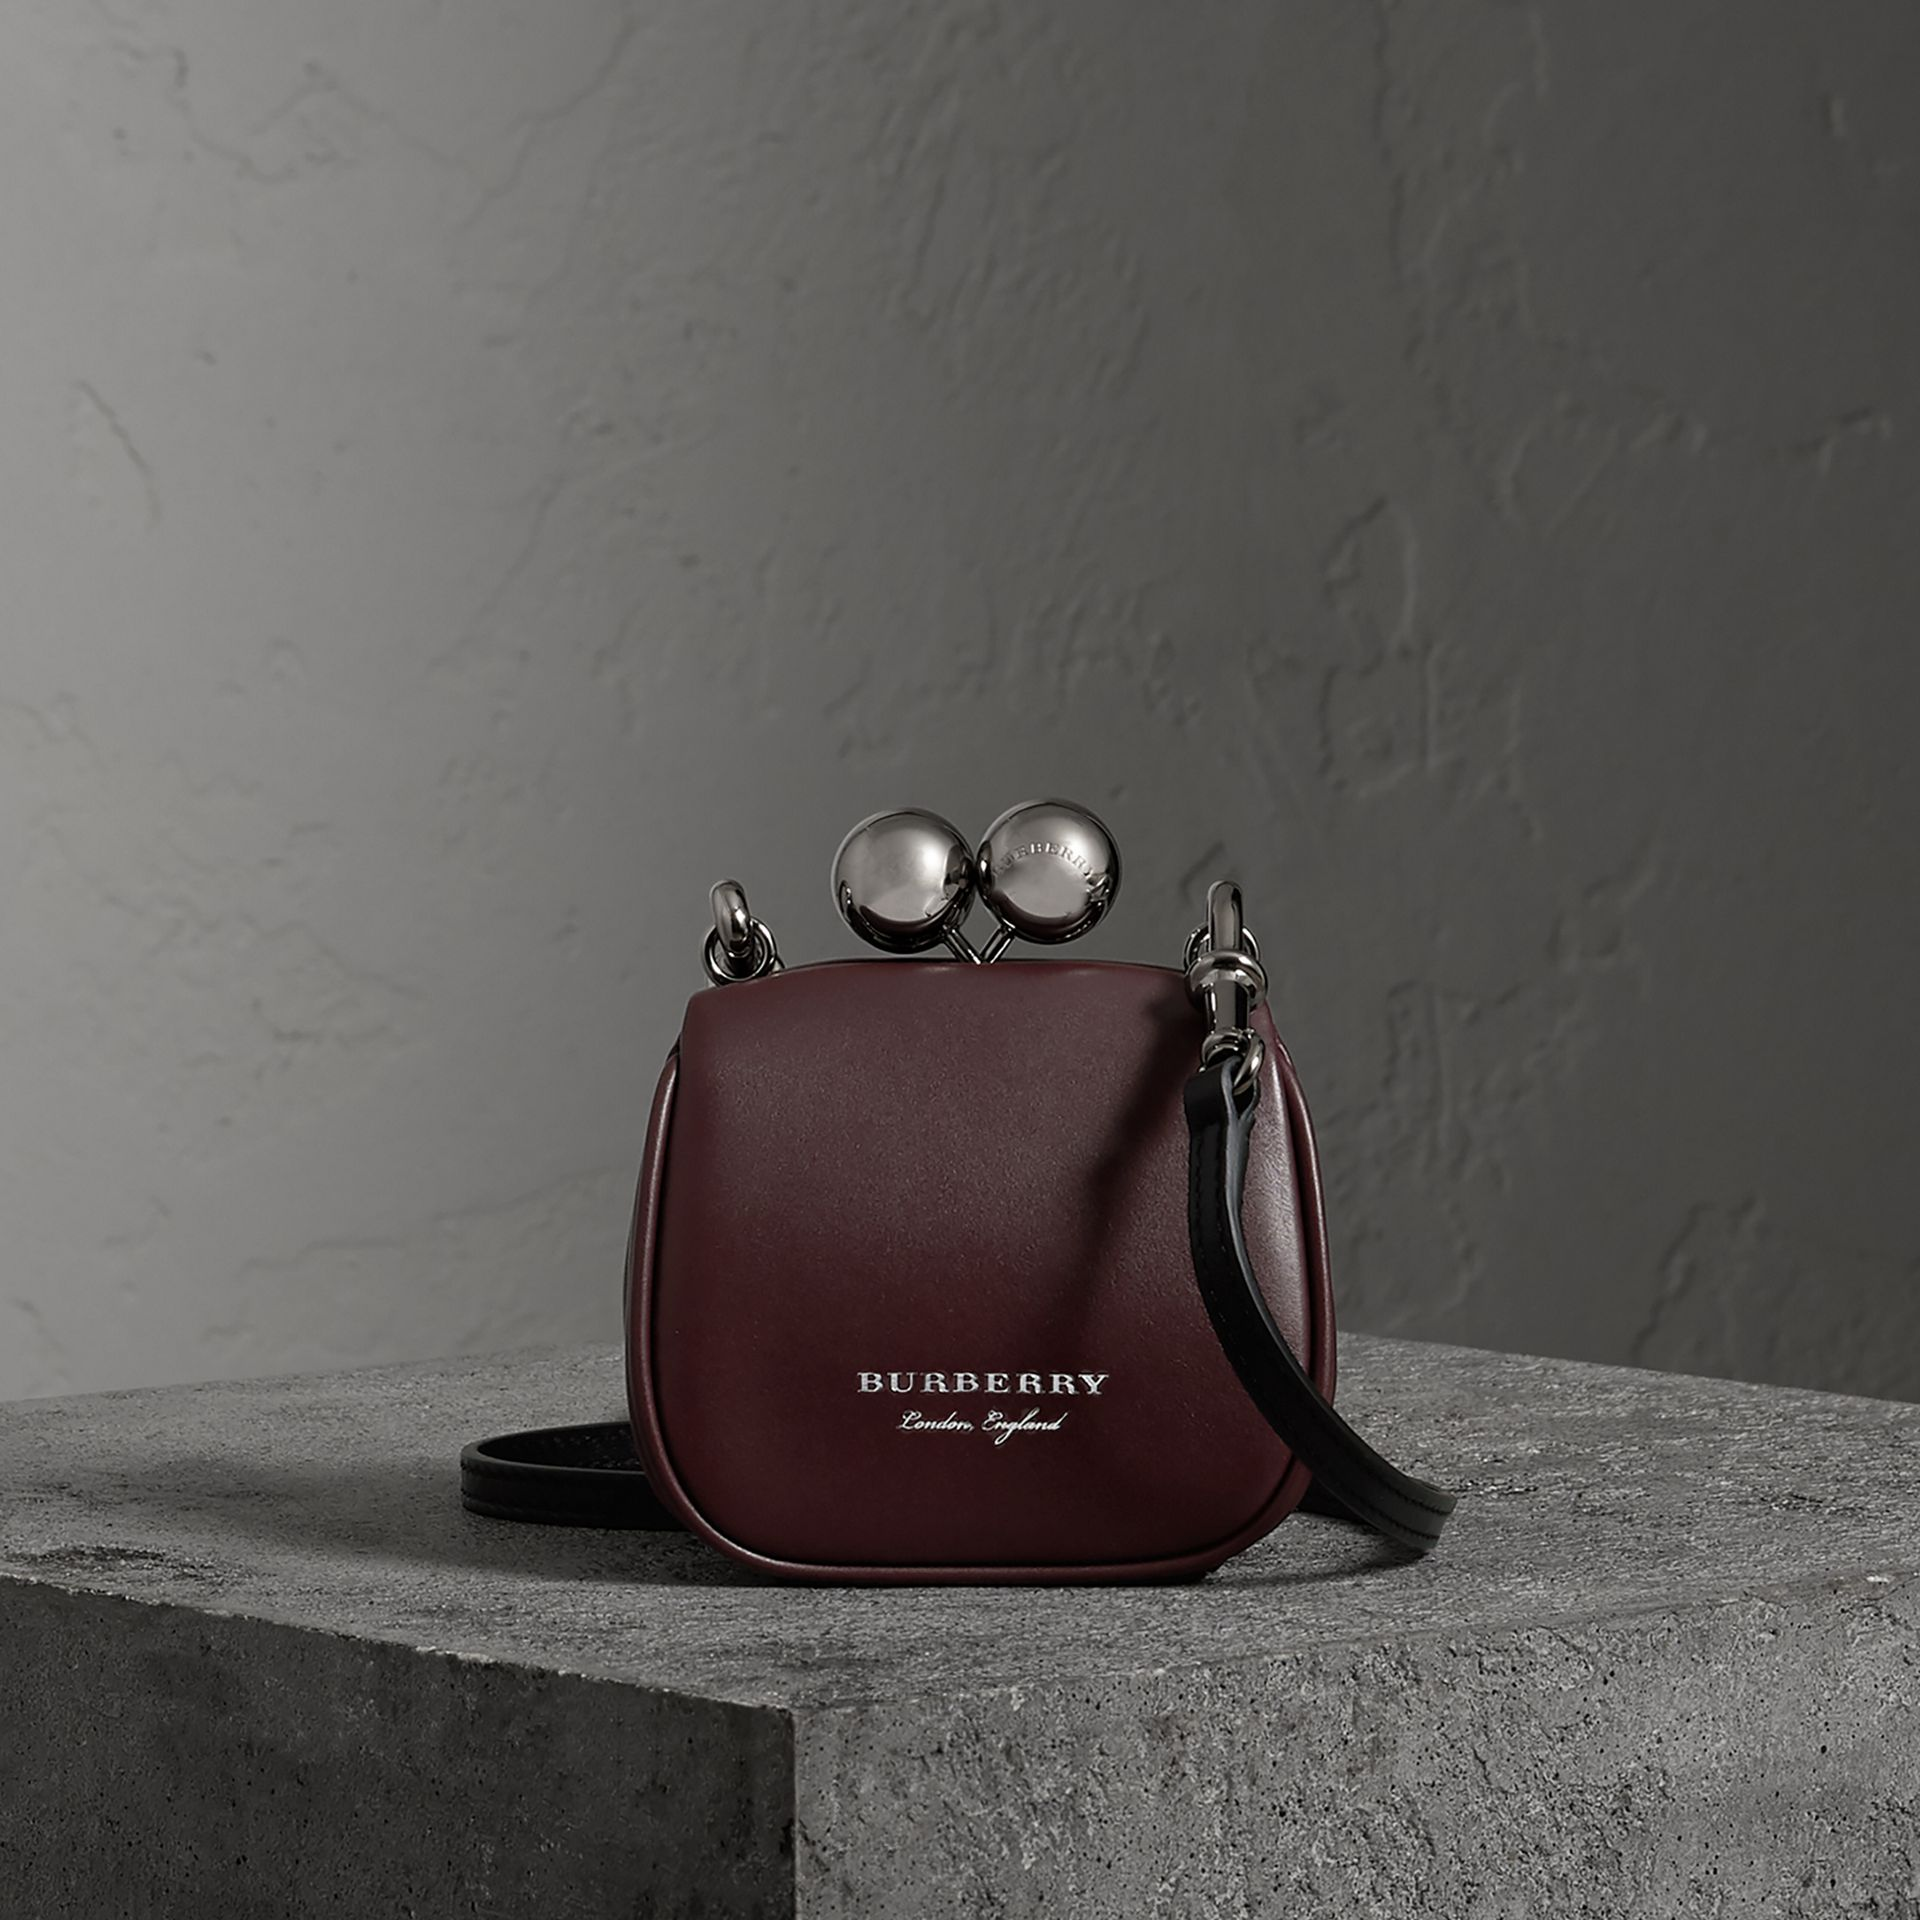 Mini Two-tone Leather Frame Bag in Burgundy - Women | Burberry - gallery image 0